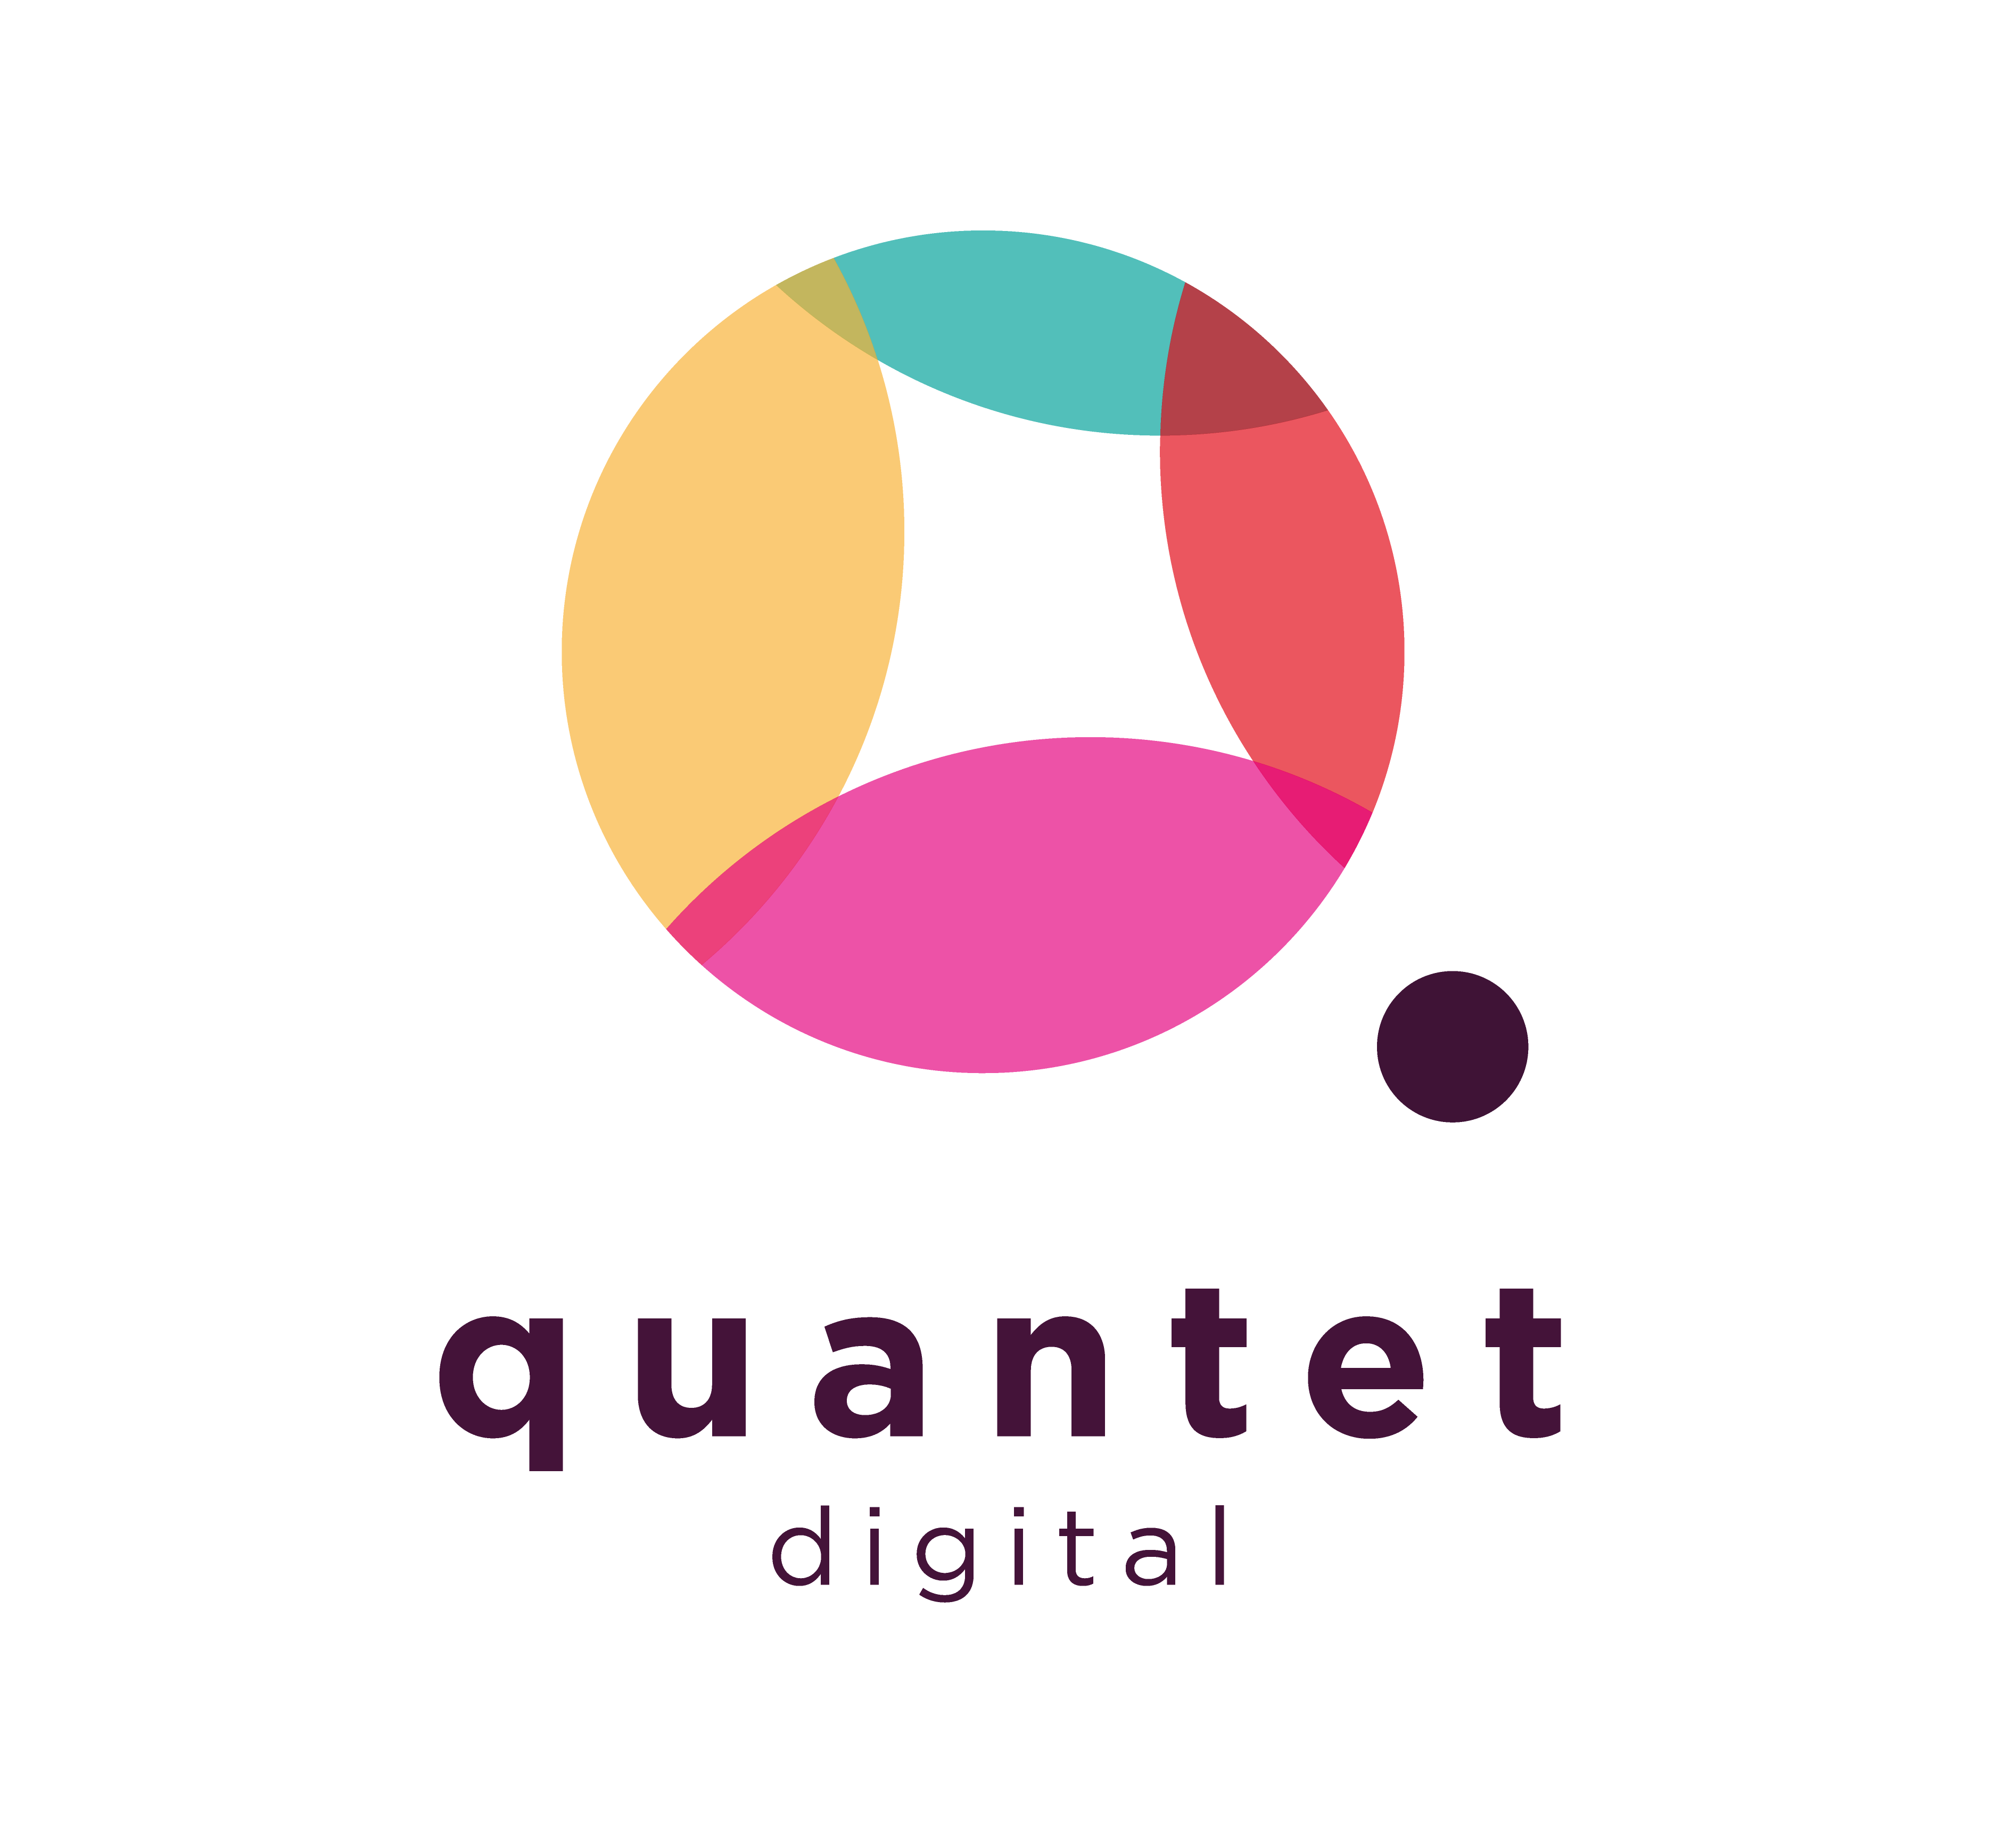 quantet-digital-logo